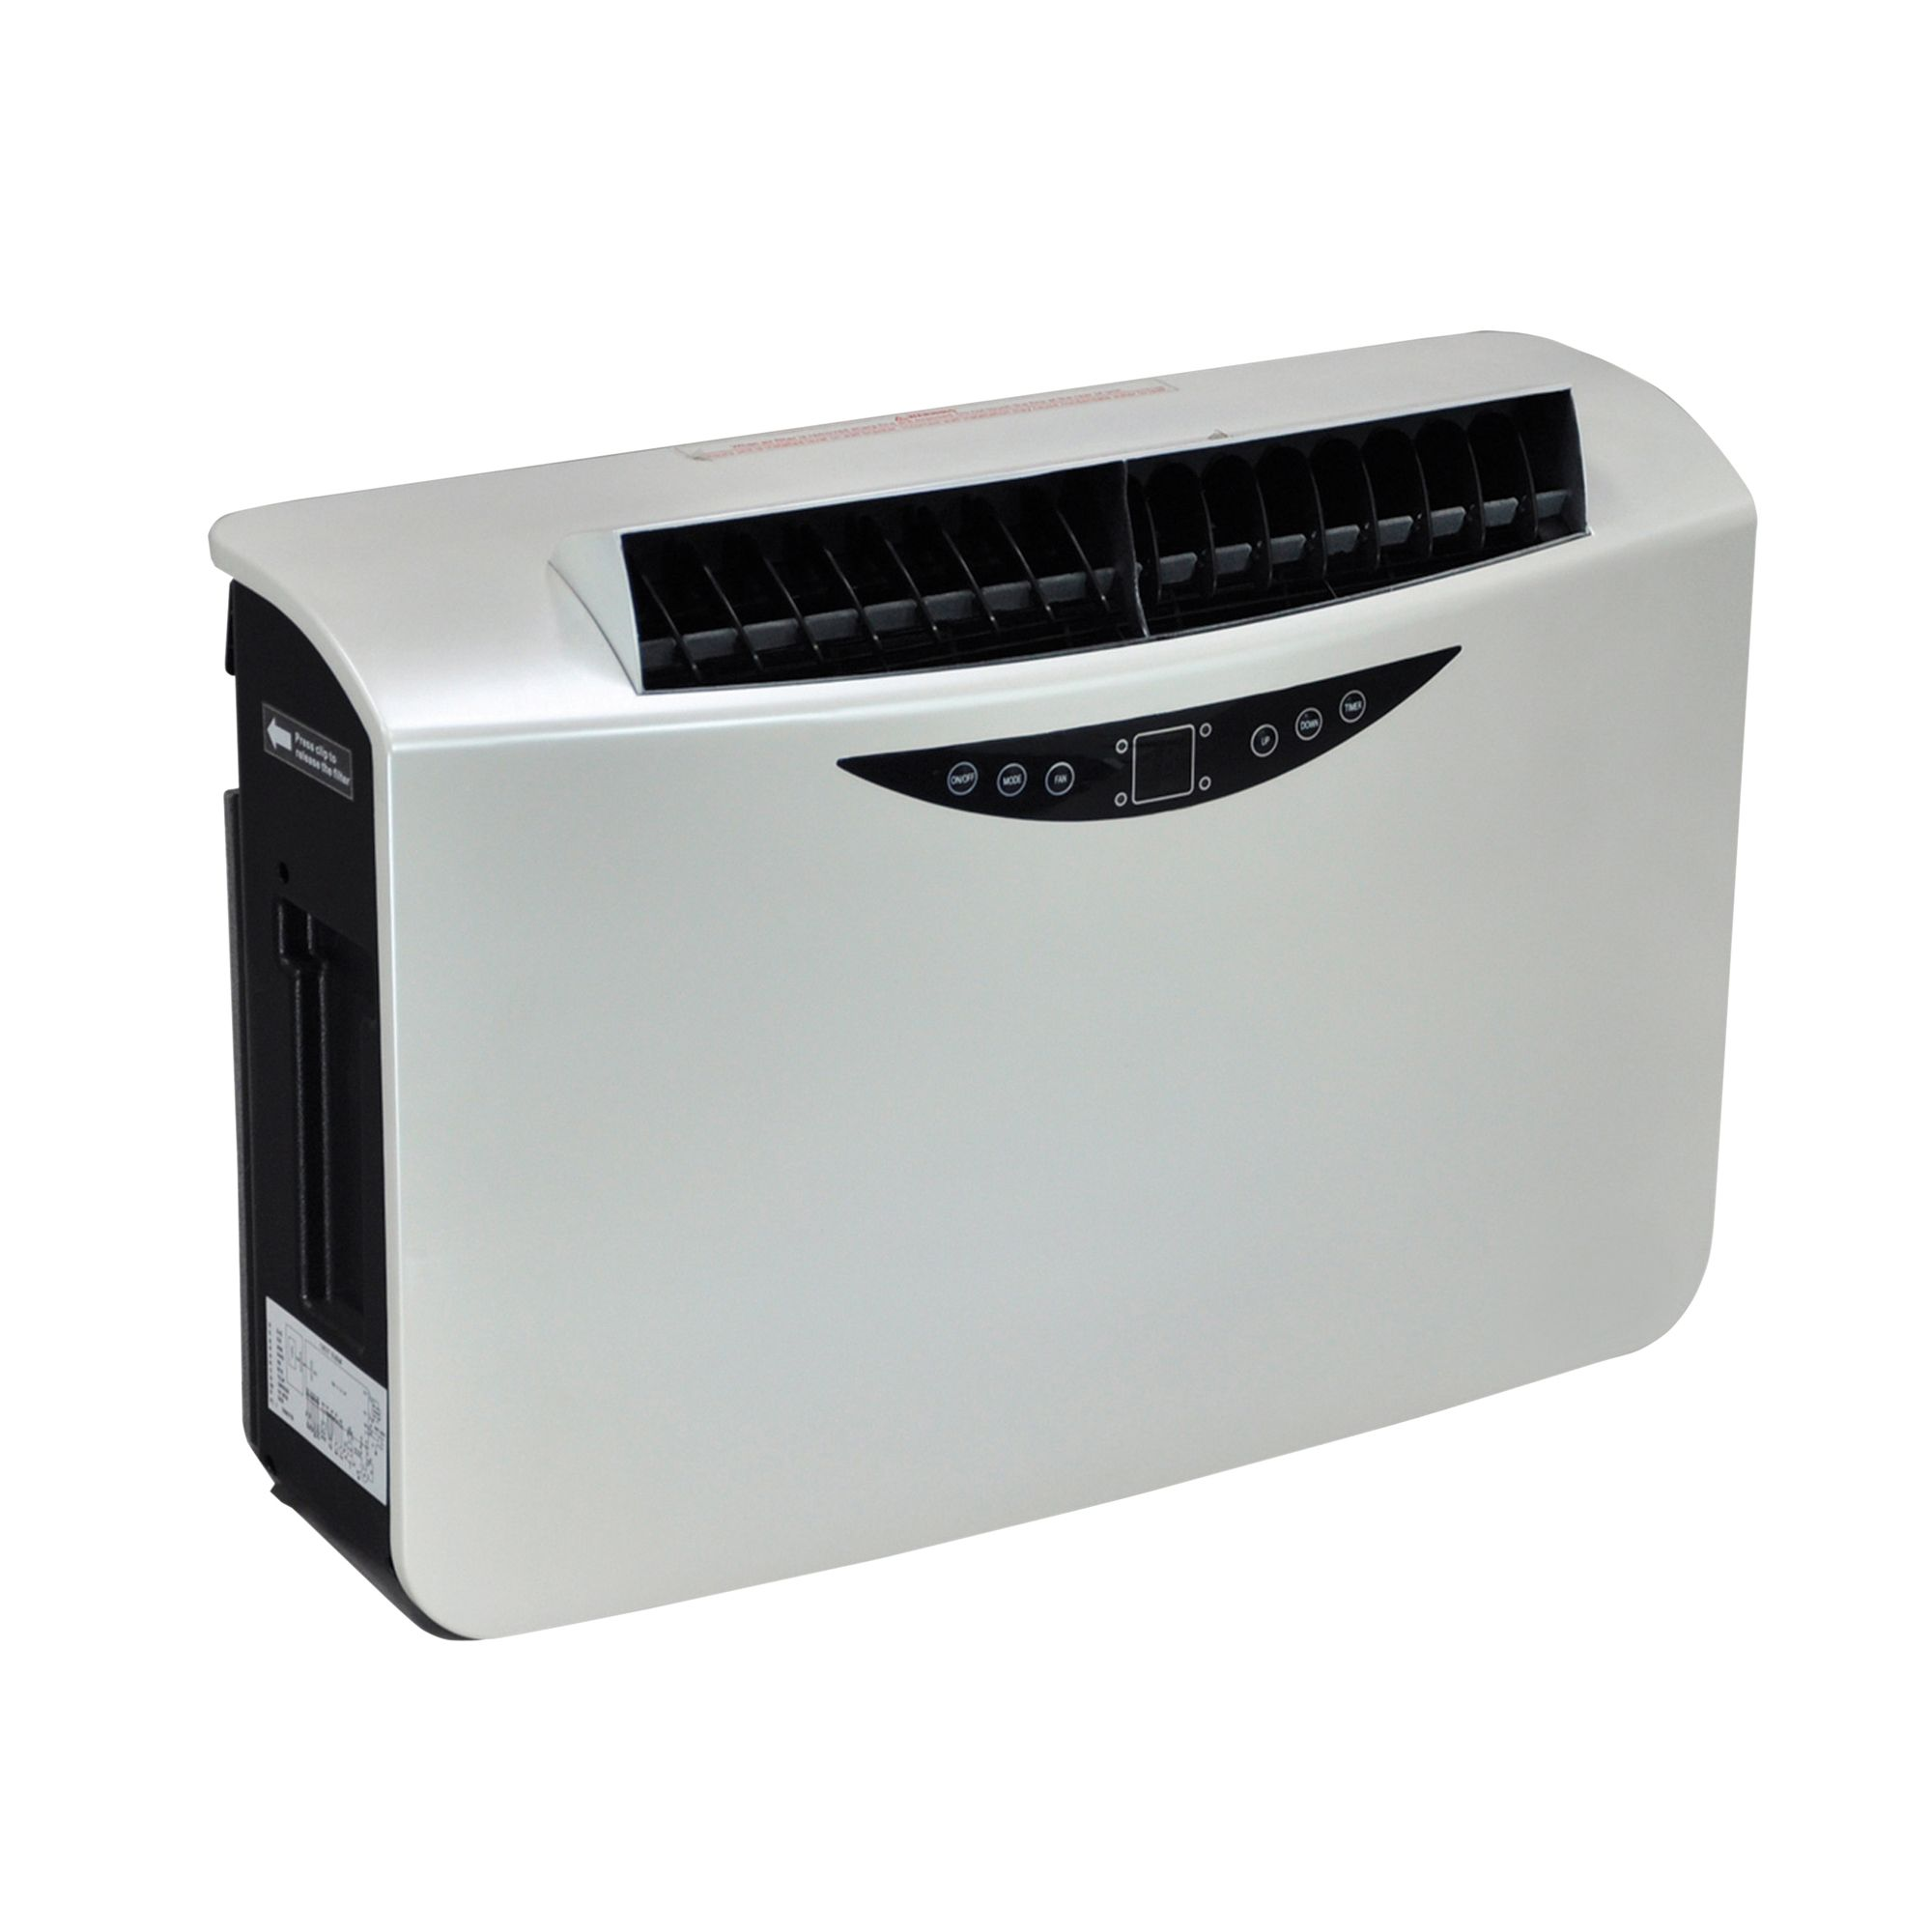 wall mitsubishi pump our pumps recessed unit ceiling services ductless heat indoor heating